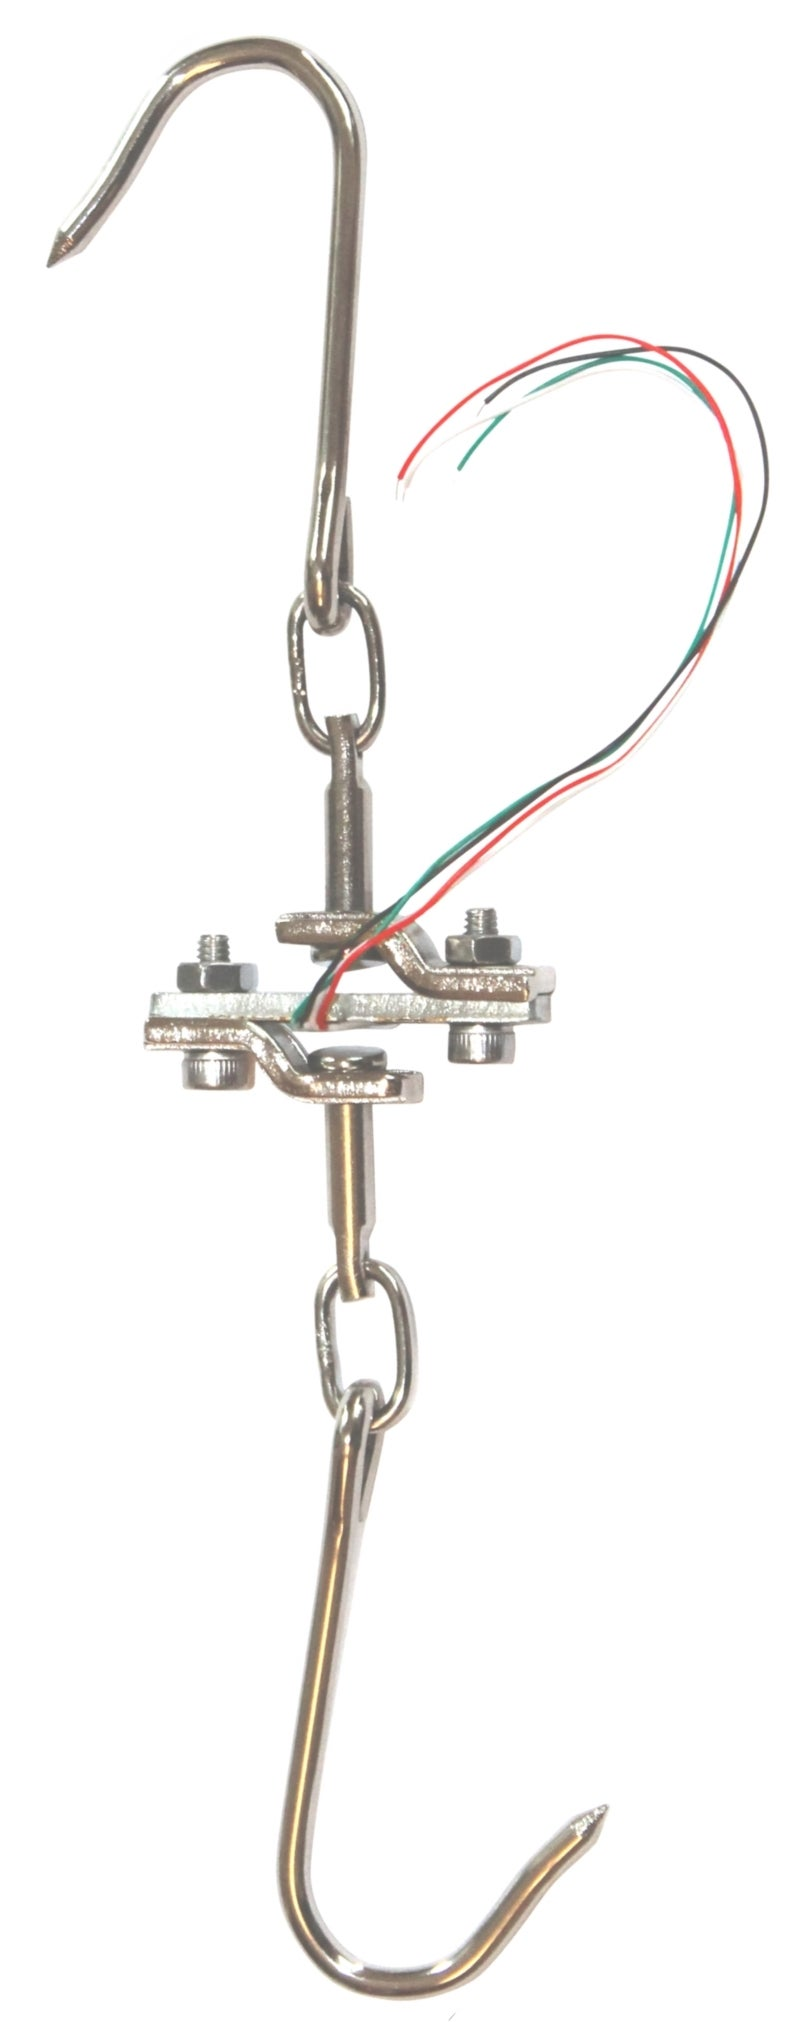 Mount the Load Cell